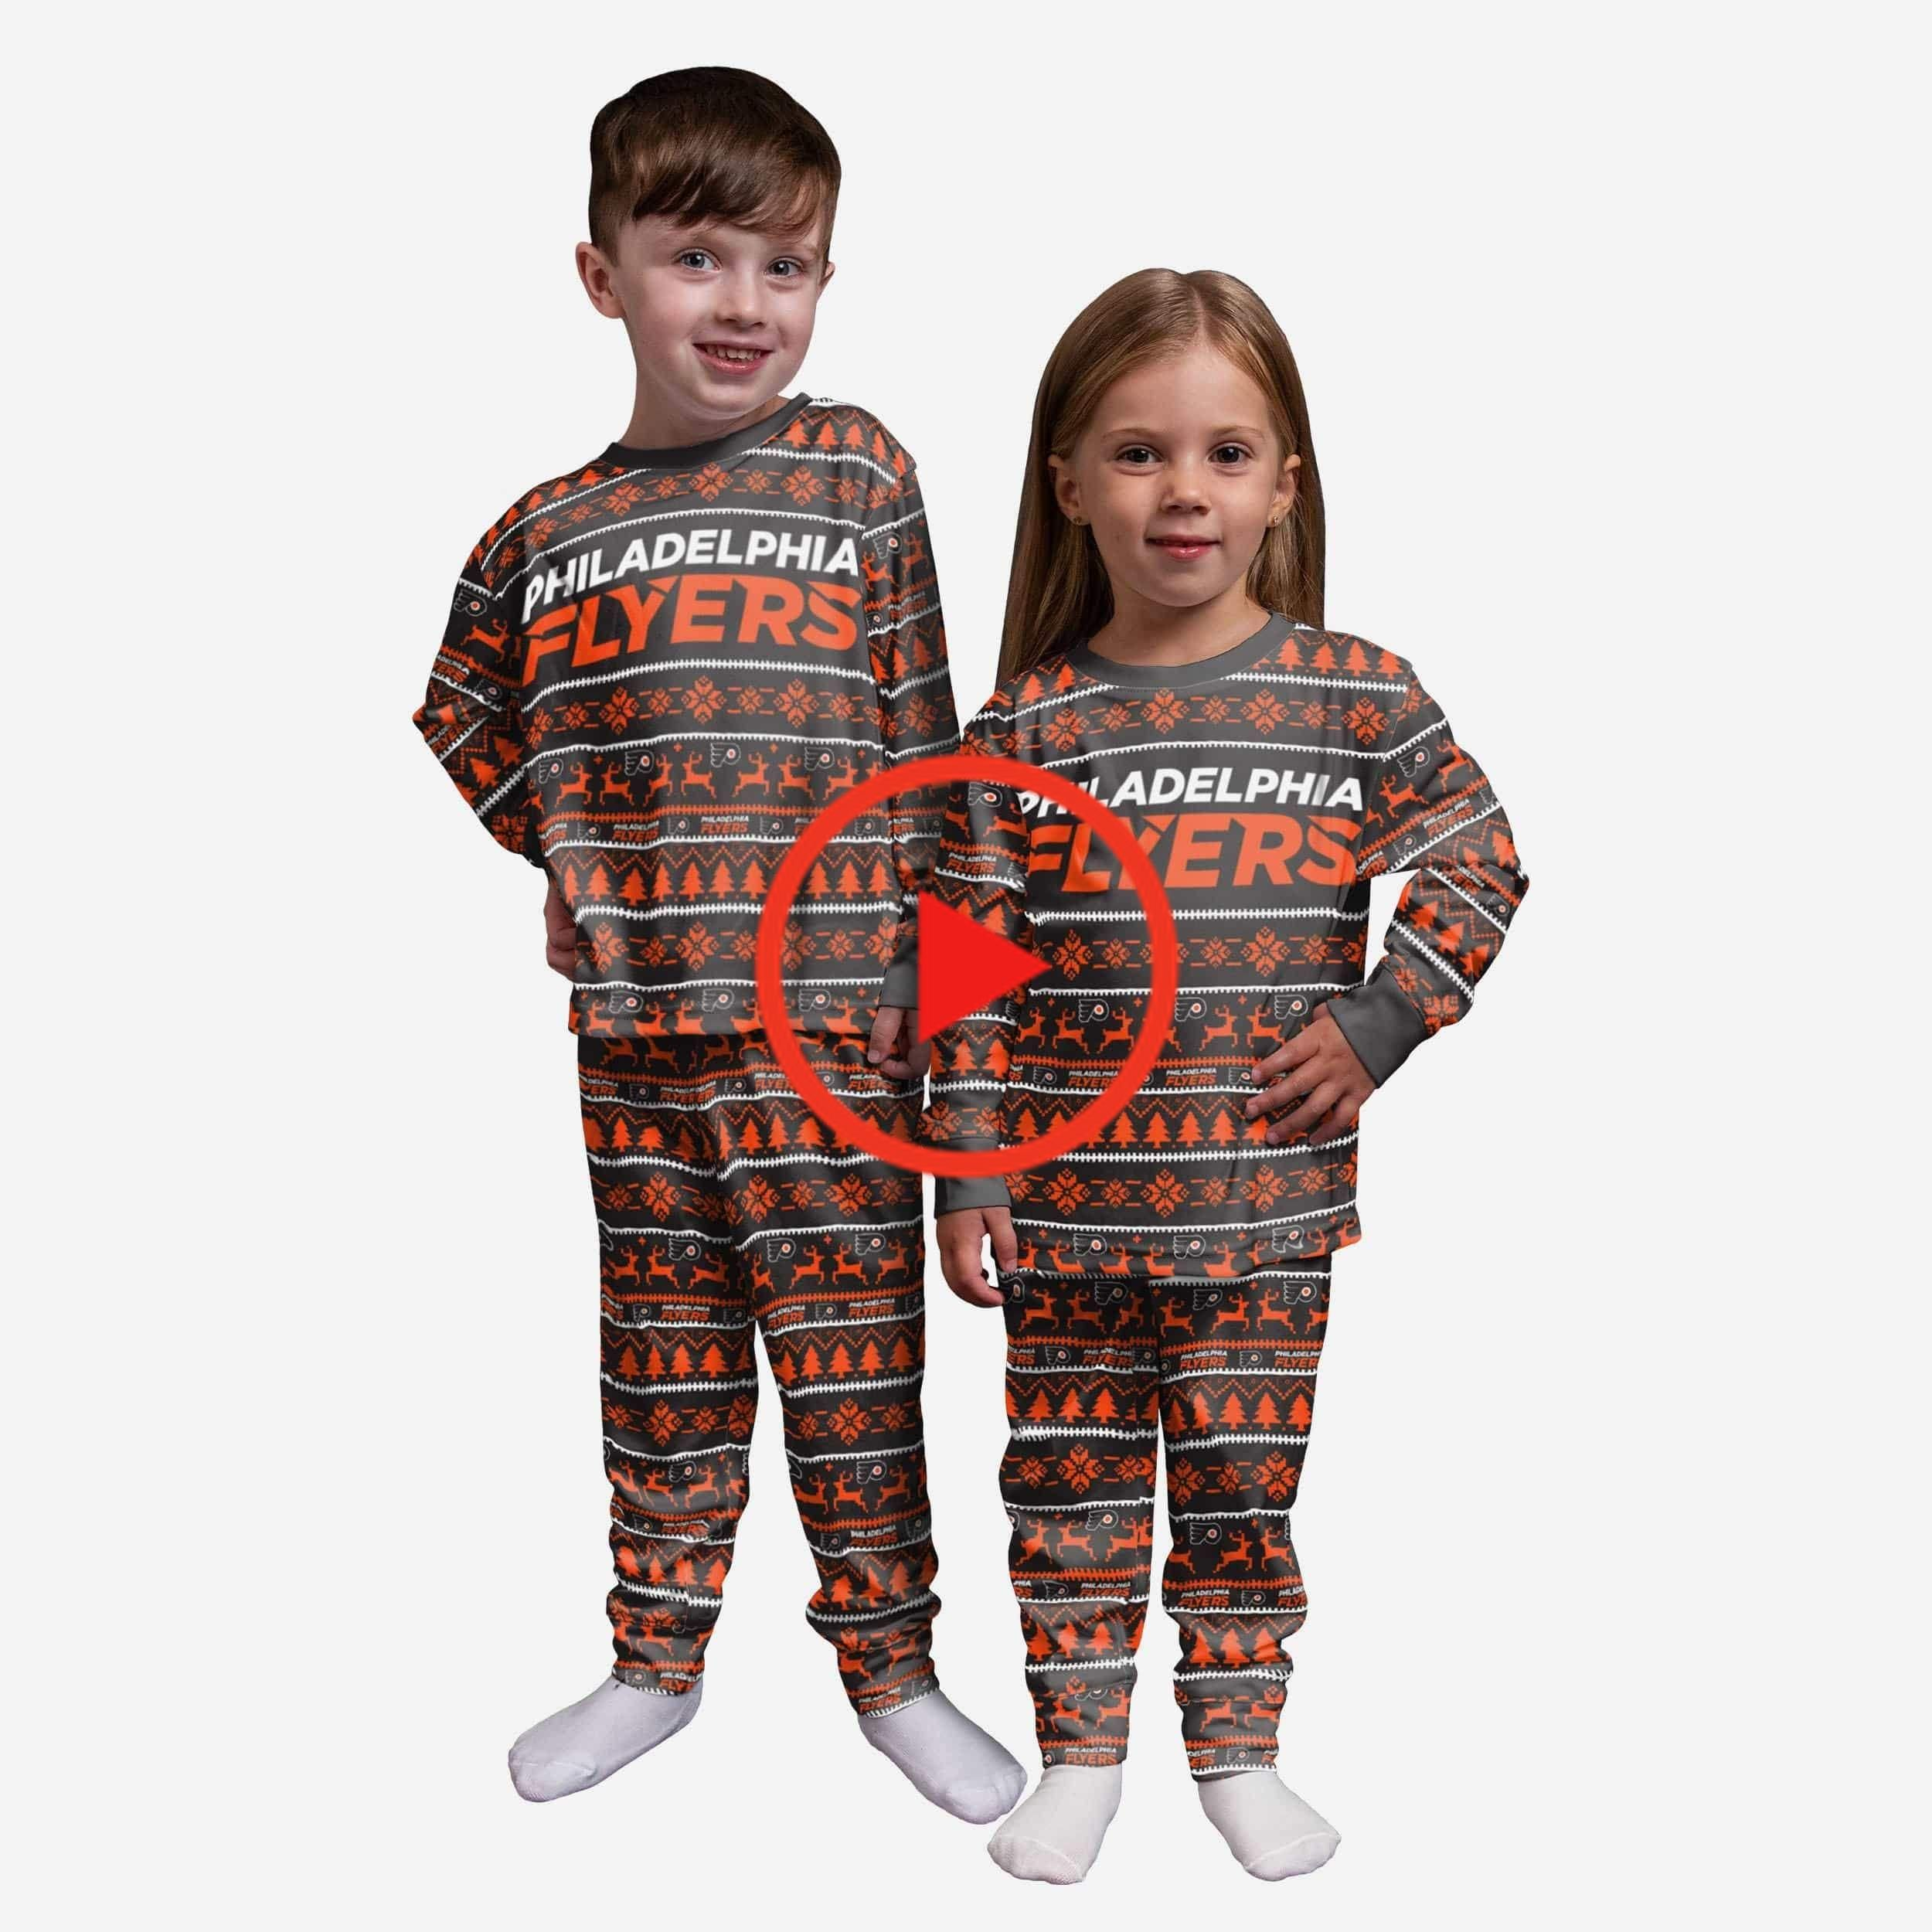 Philadelphia Flyers Peuter Family Holiday Pajamas in 2020